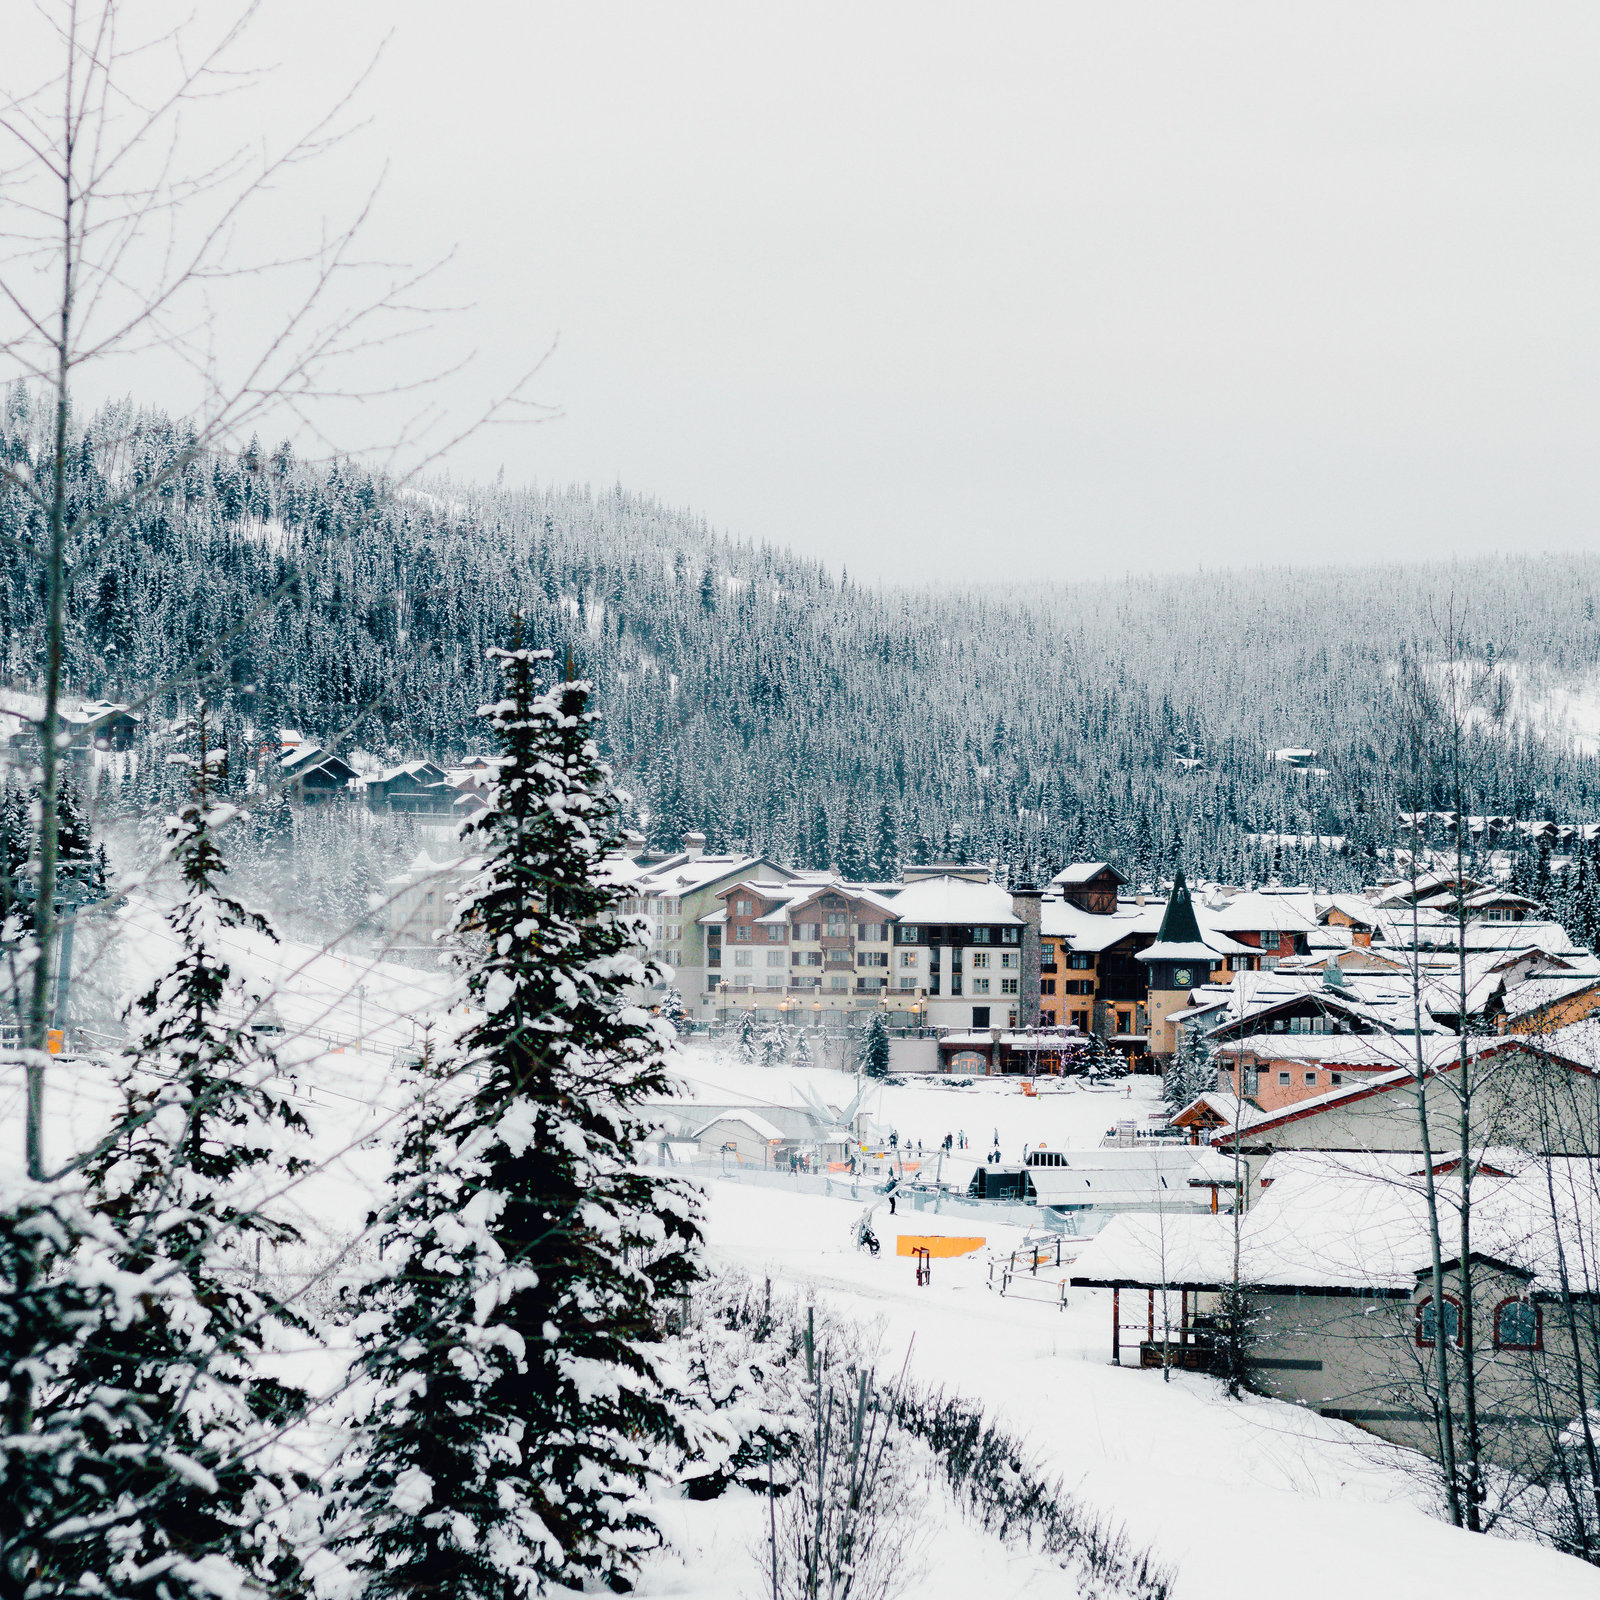 Winter Season in Sun Peaks